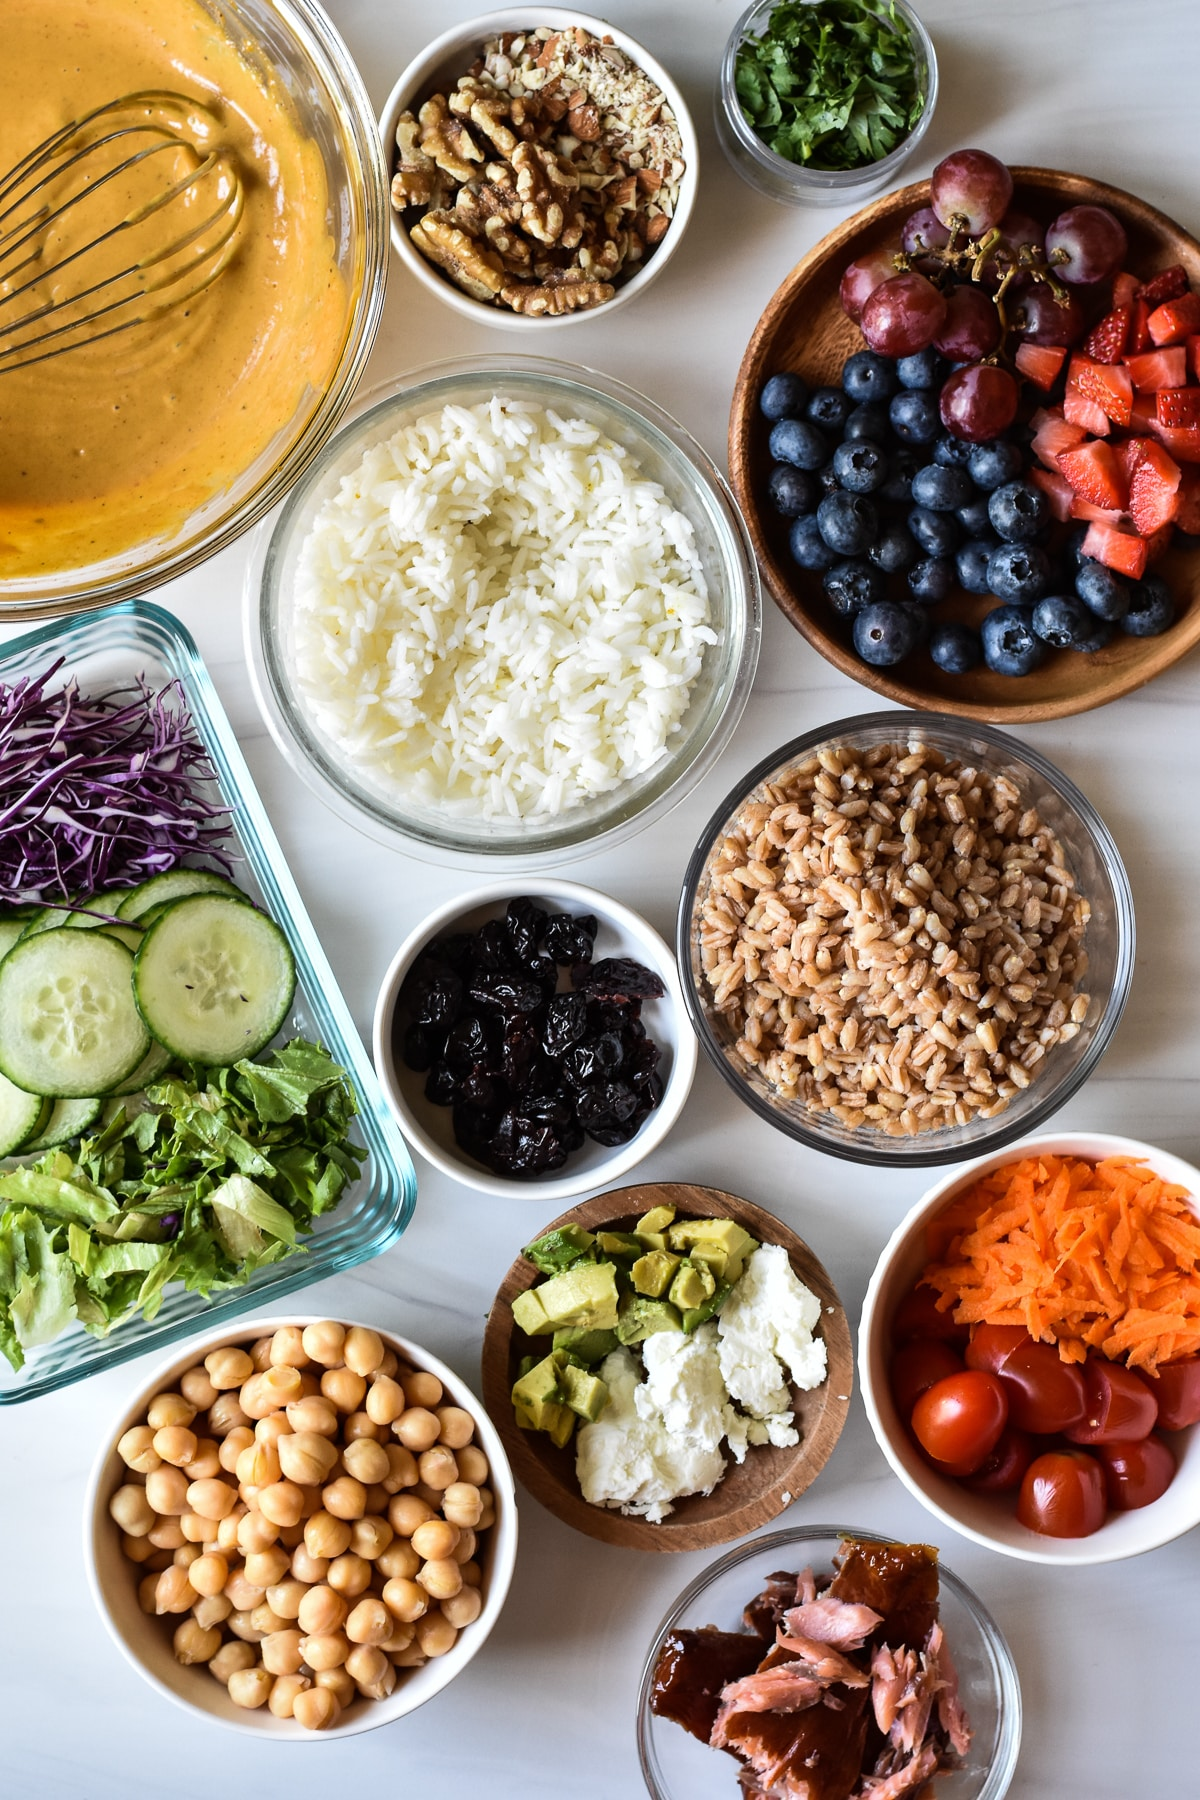 ingredients for nourish bowls in separate bowls